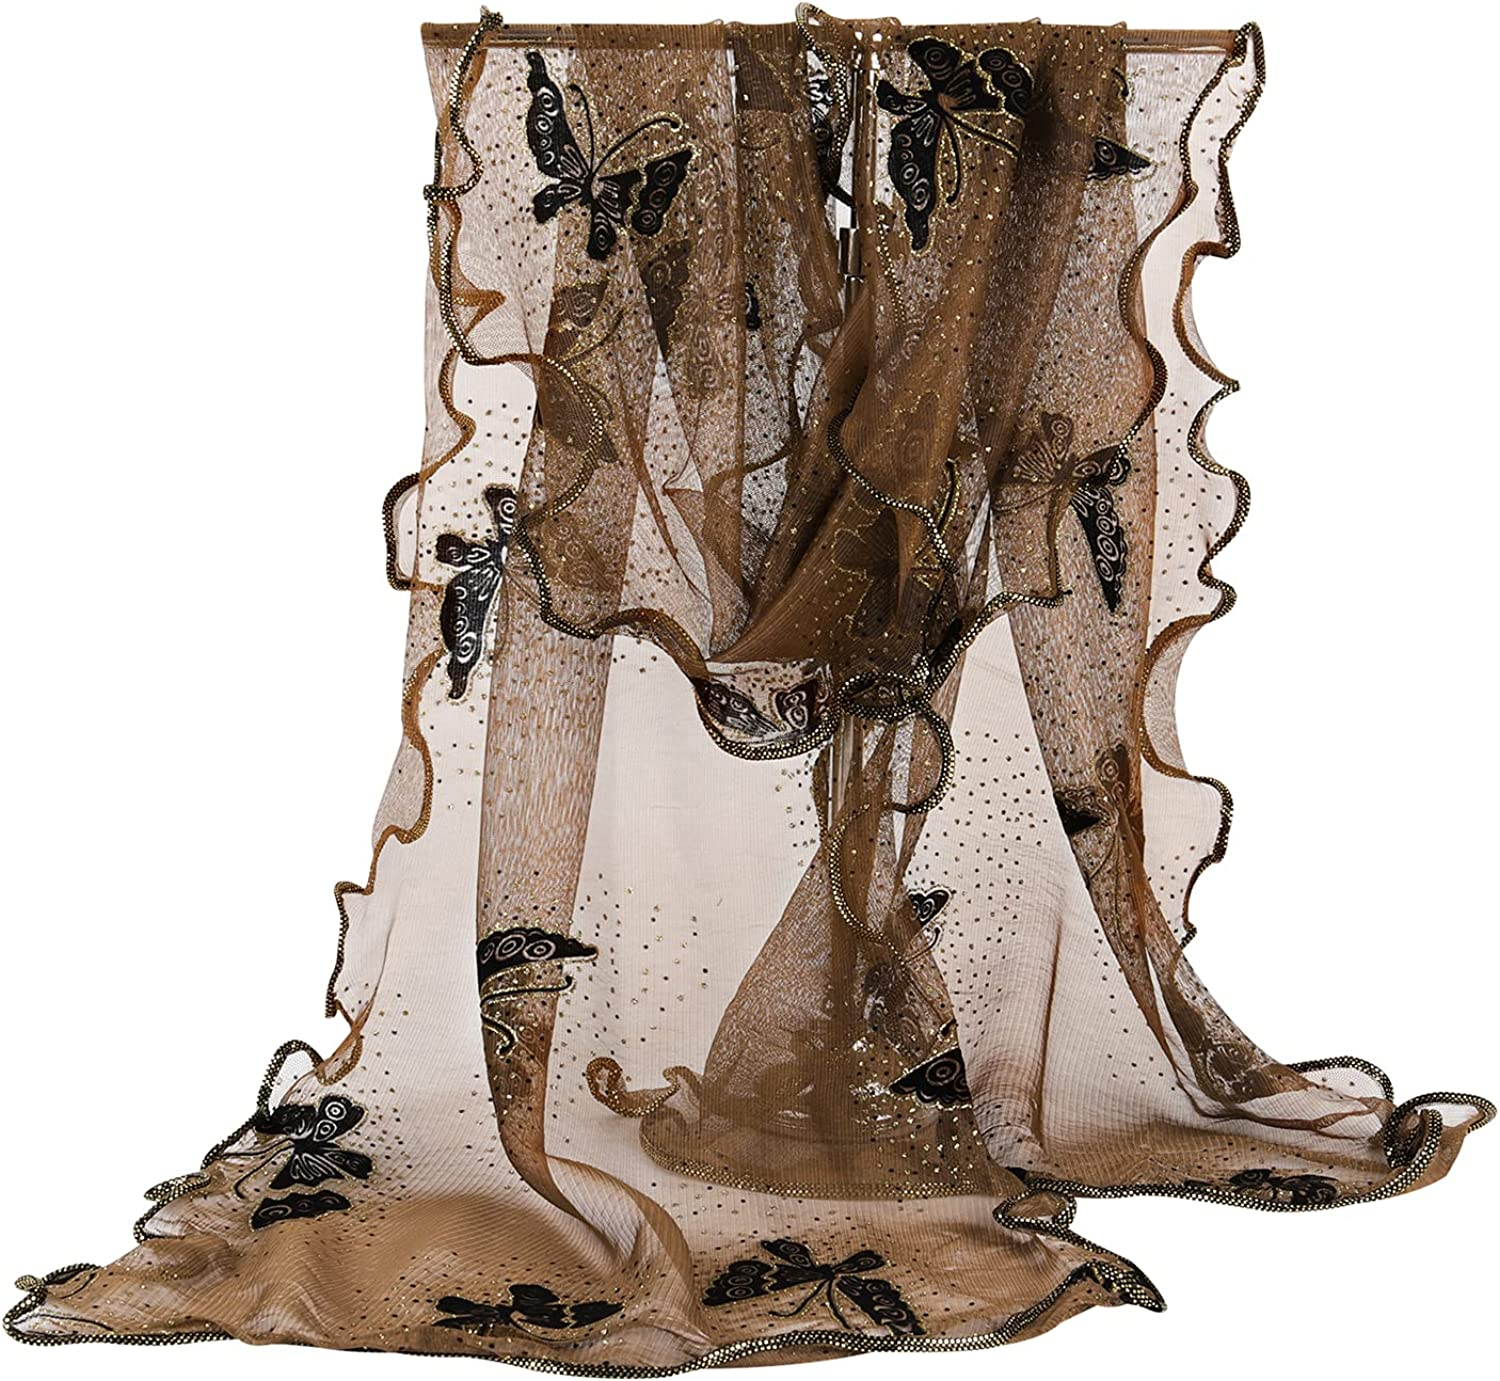 GERINLY Women Scarves Cute Butterflies Max 72% OFF Chiffon Sheer Soft Oakland Mall Scarf